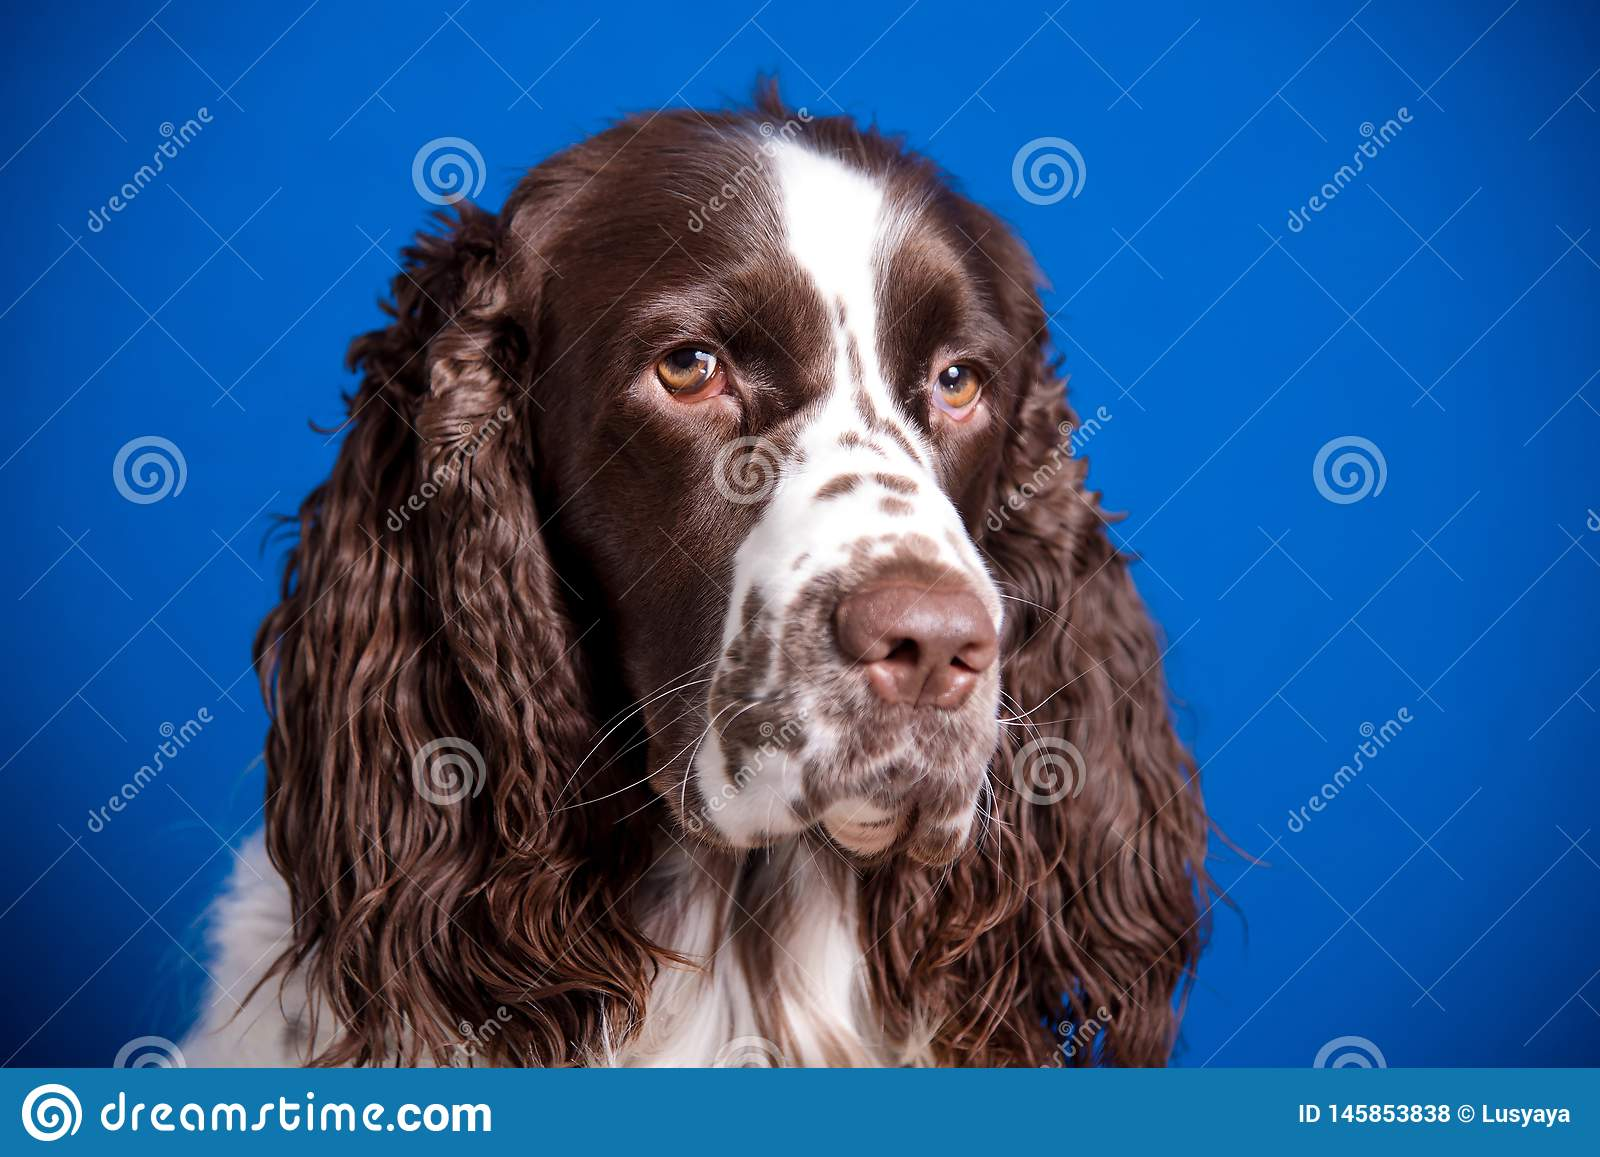 Beautiful Young Dog Breed English Springer Spaniel On Blue